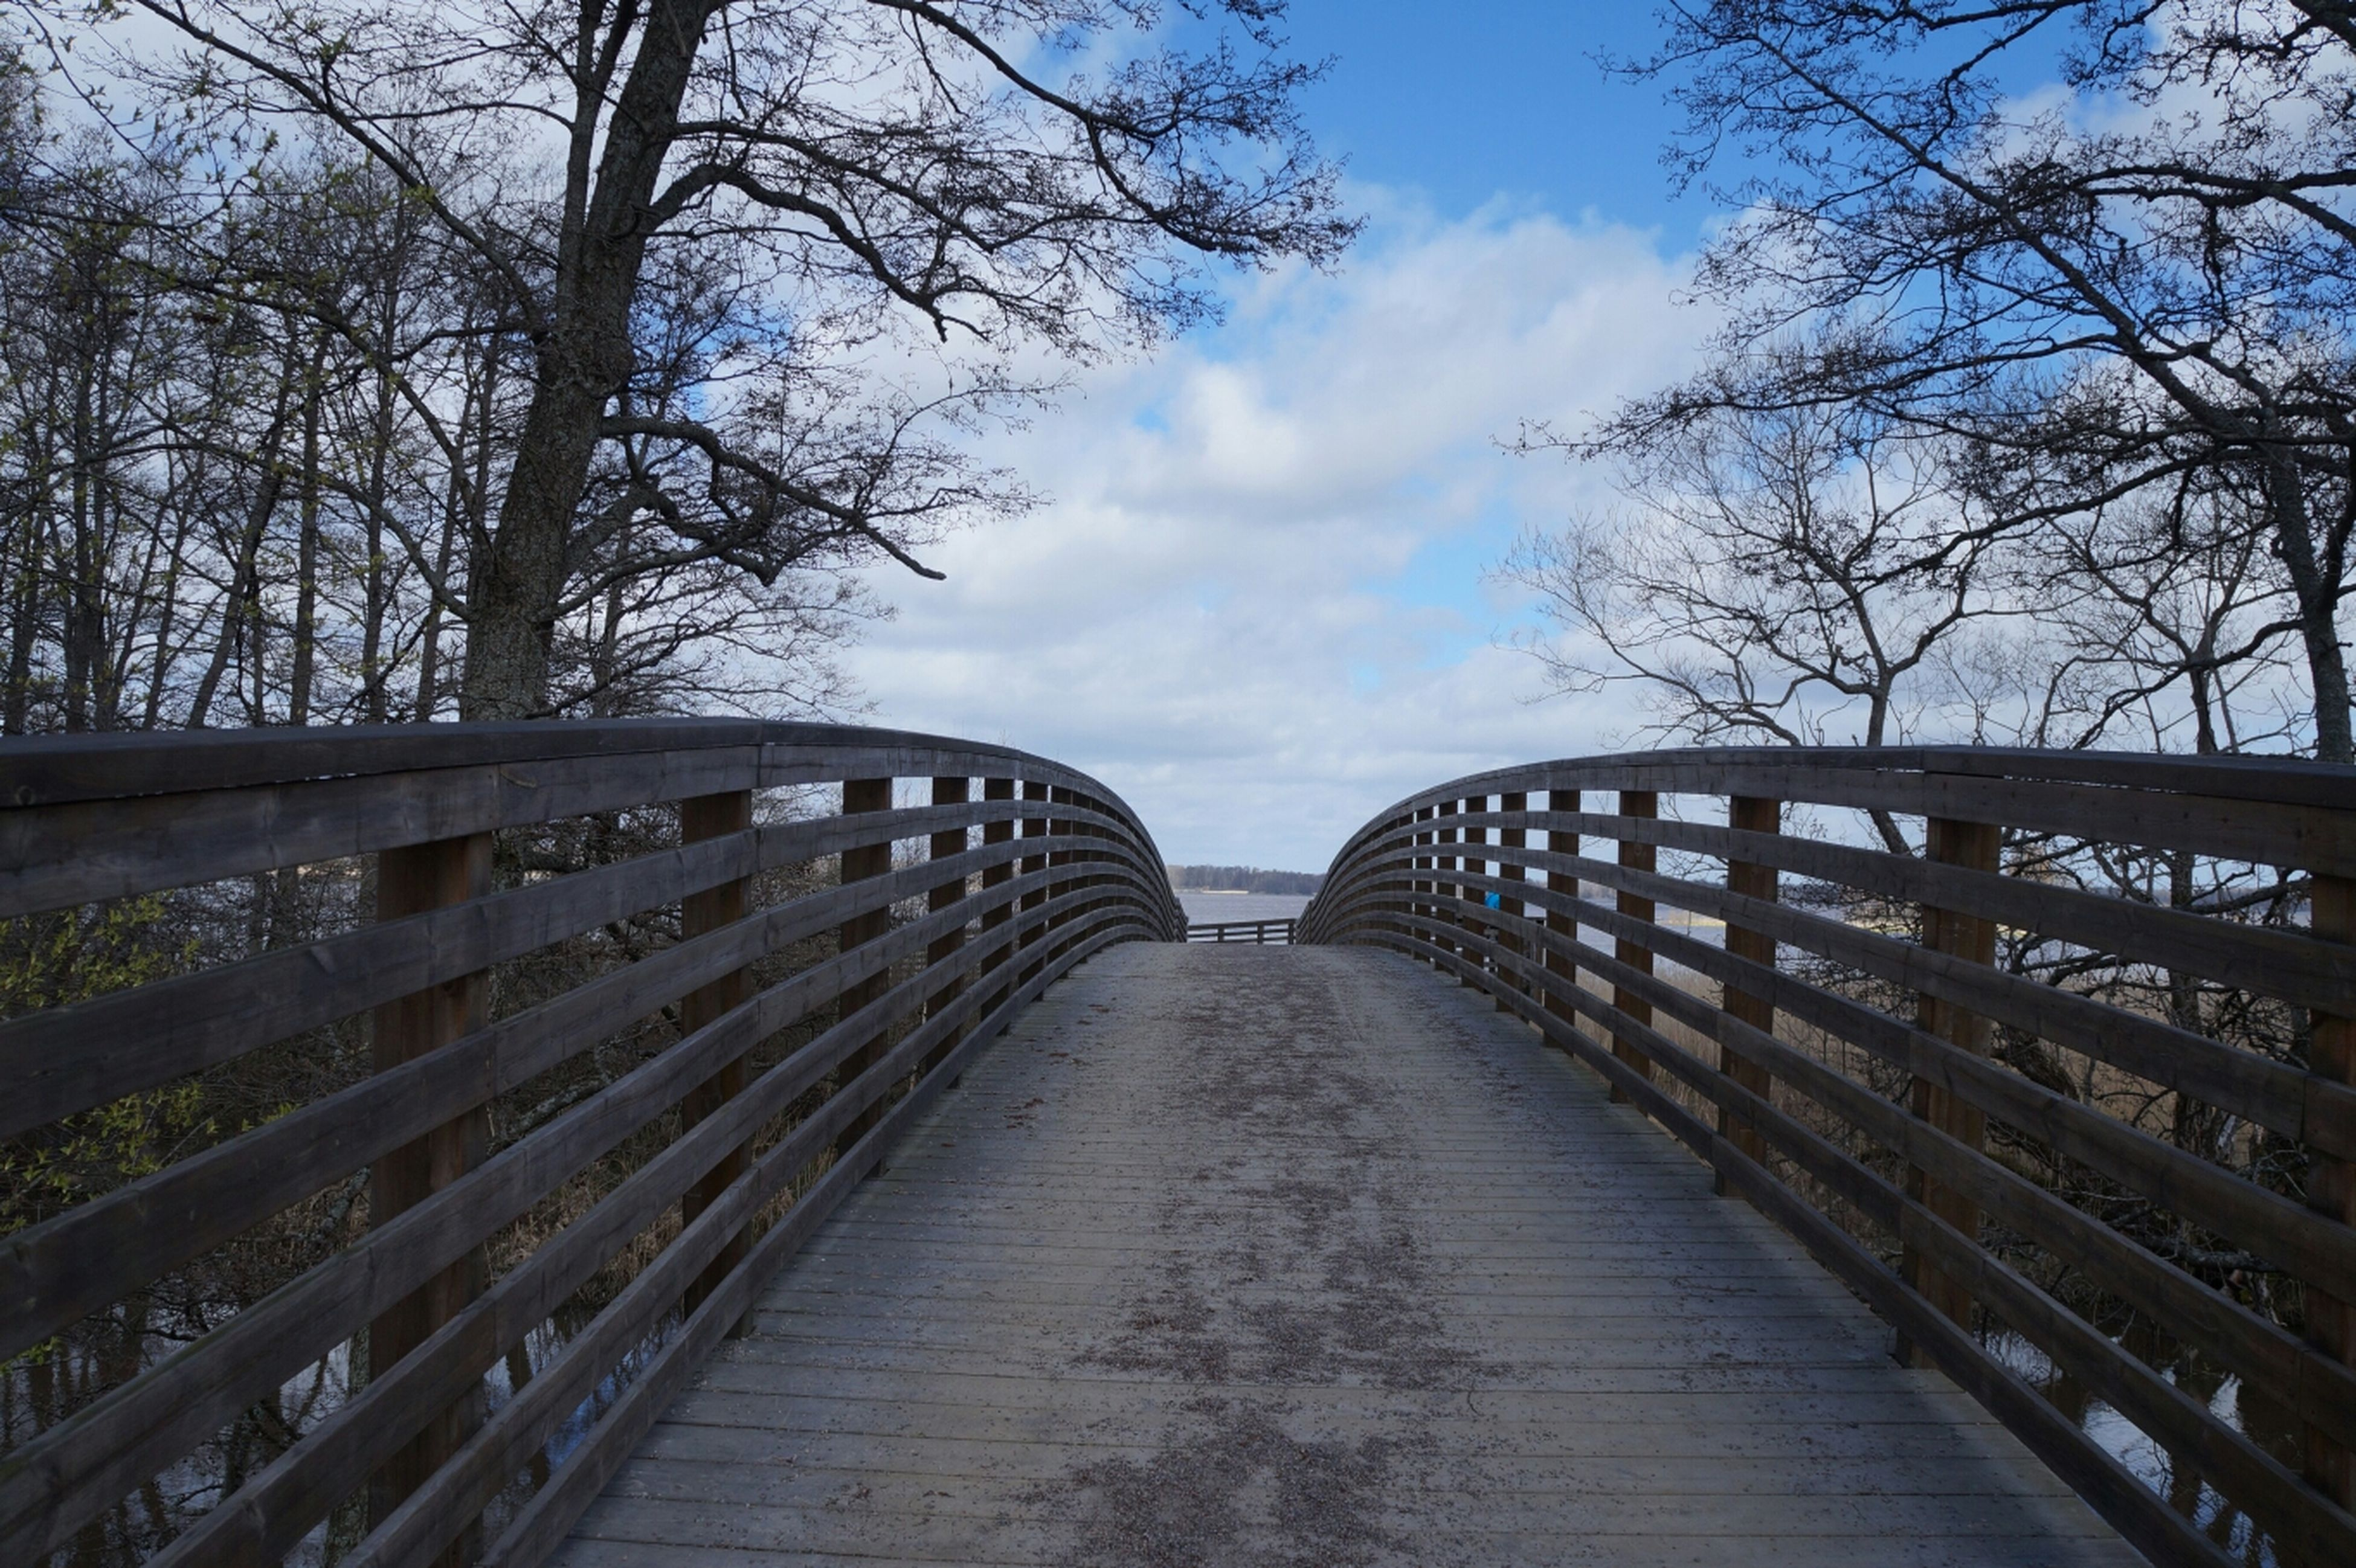 the way forward, tree, diminishing perspective, sky, railing, vanishing point, bare tree, footbridge, tranquility, cloud - sky, built structure, long, connection, nature, branch, bridge - man made structure, wood - material, boardwalk, tranquil scene, walkway